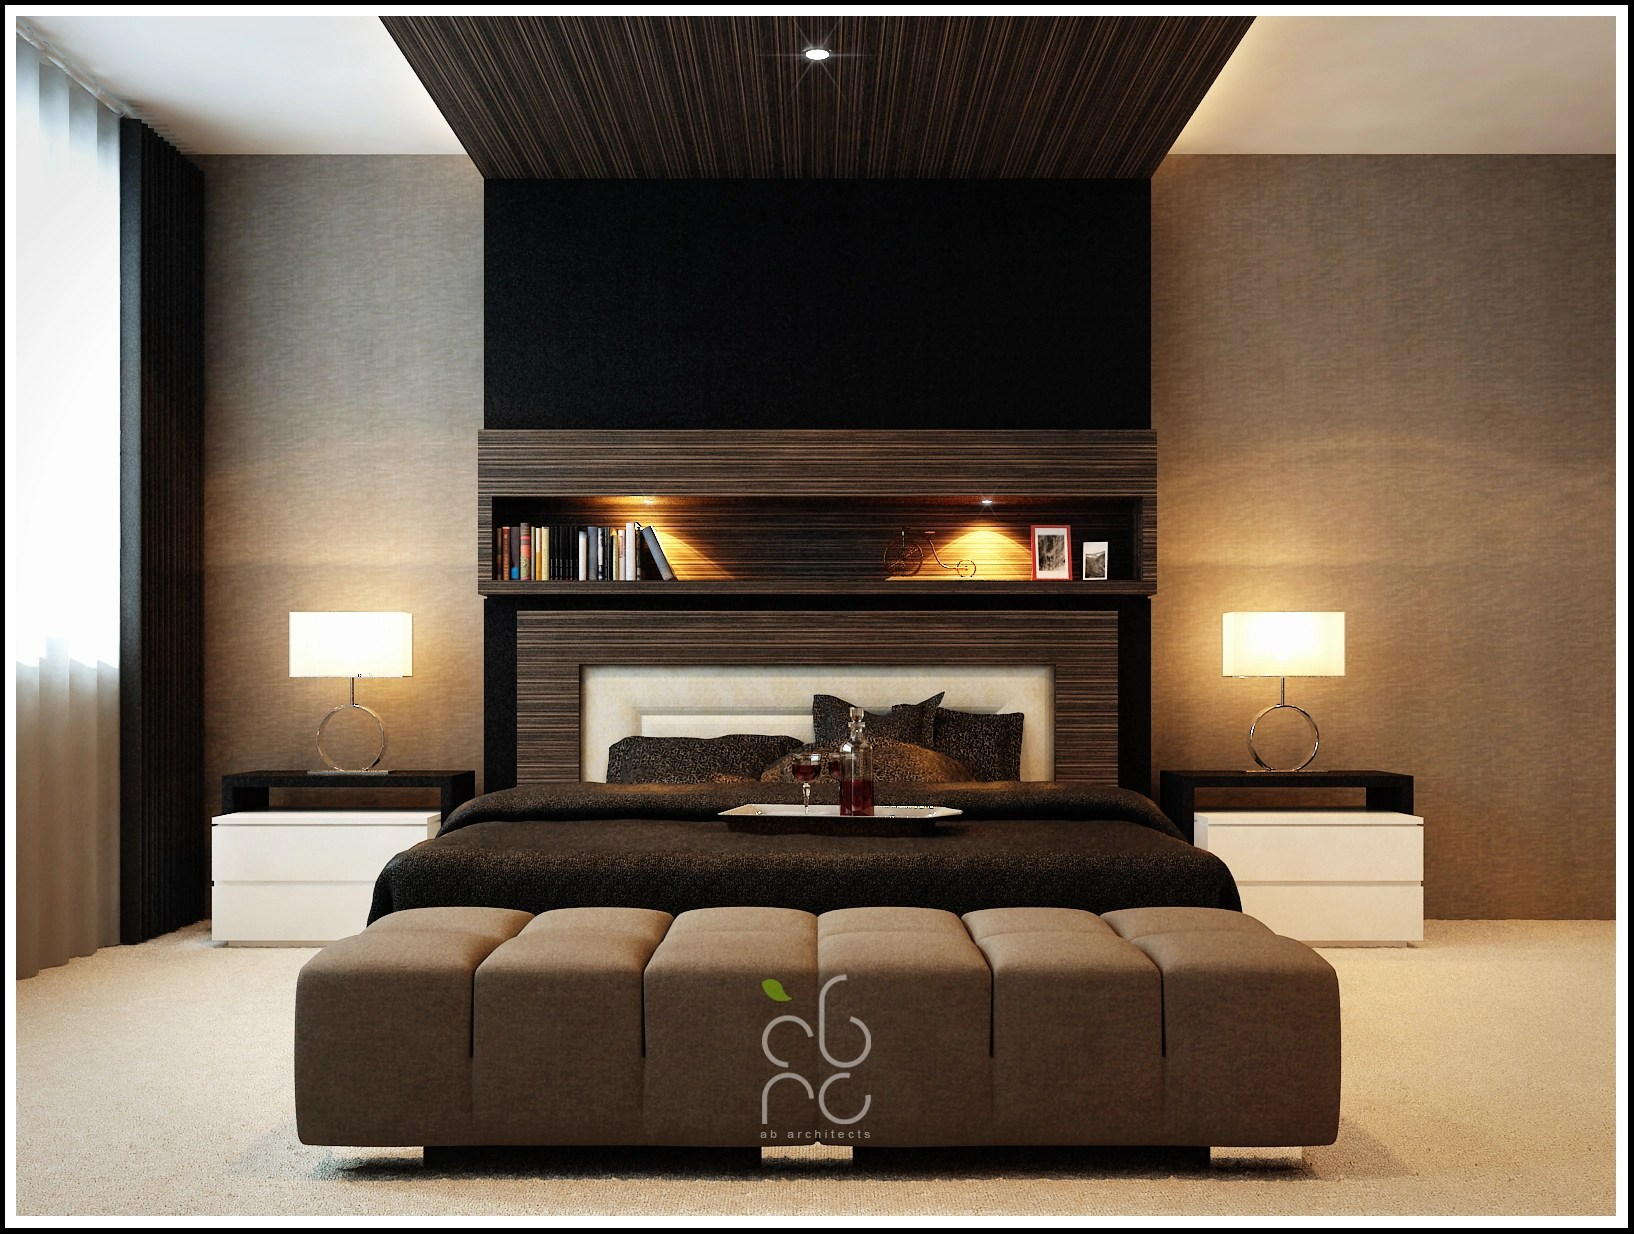 45 Master Bedroom Ideas For Your Home - The WoW Style on Best Master Bedroom  id=46954